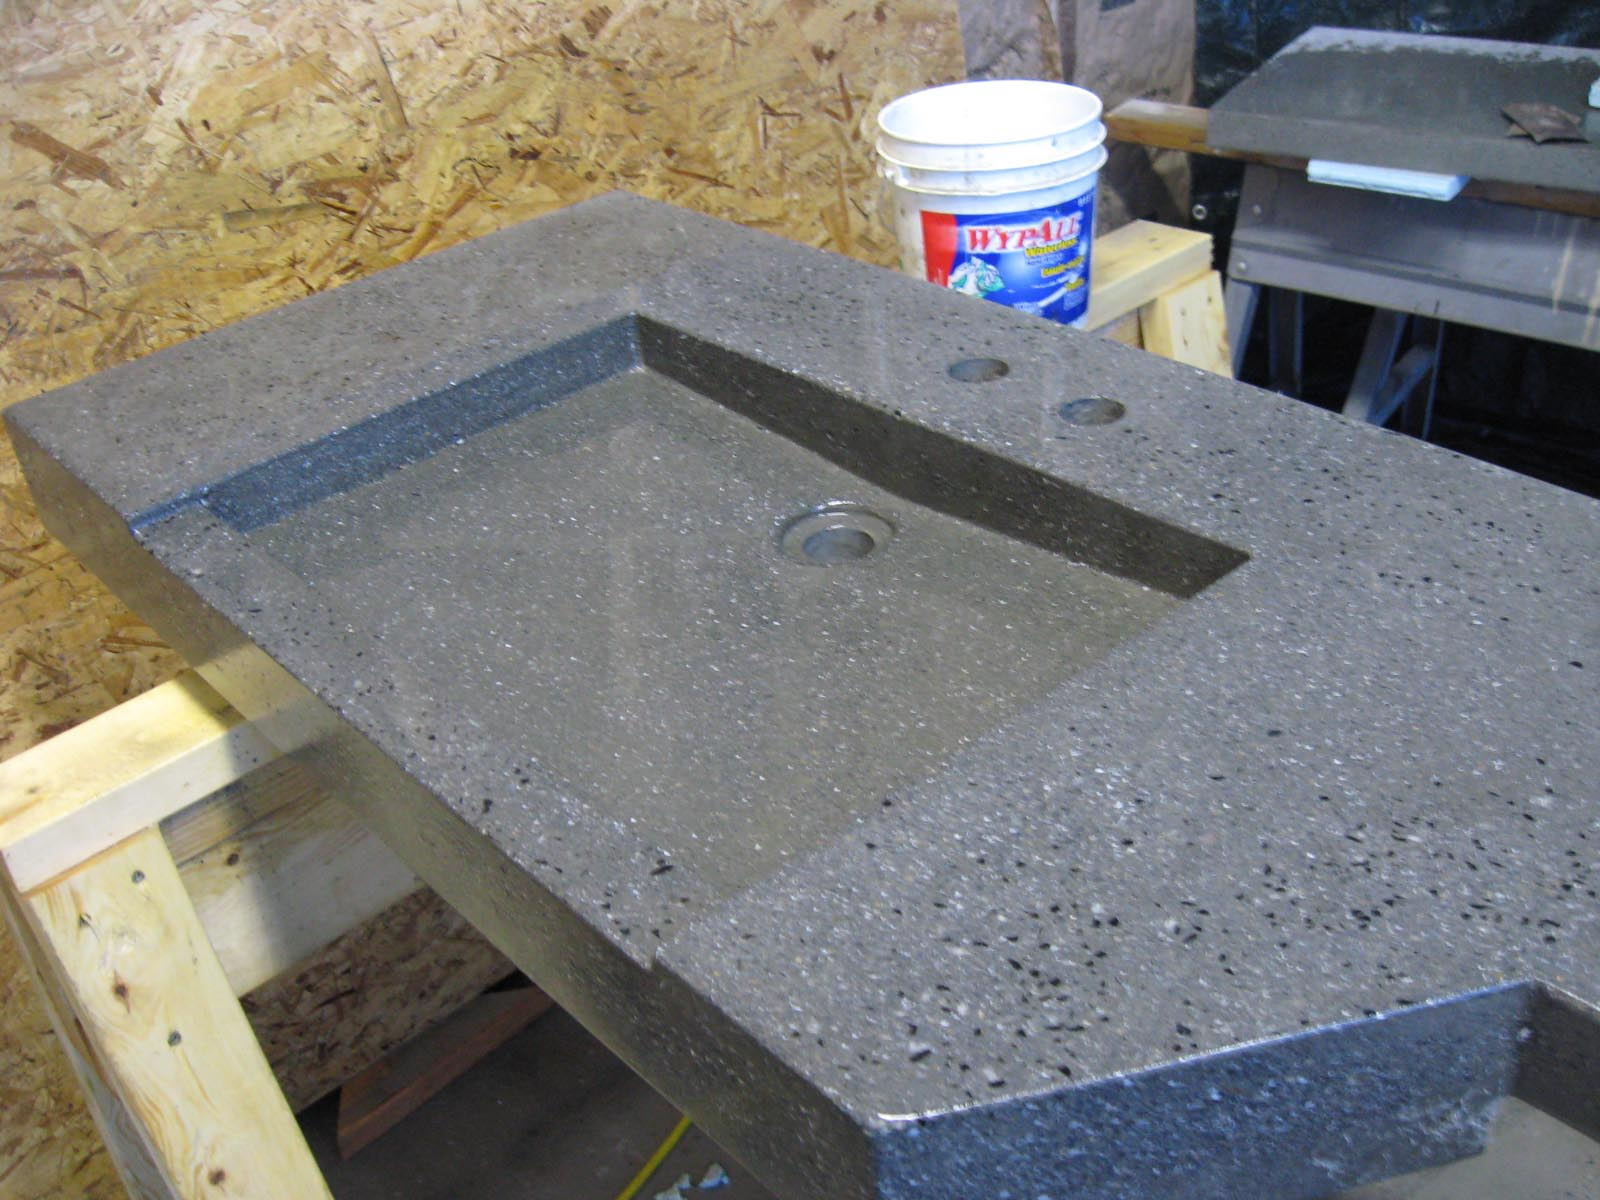 Concrete For Countertops Mix Quikrete Countertop Mix Outdoor Concrete Counter With